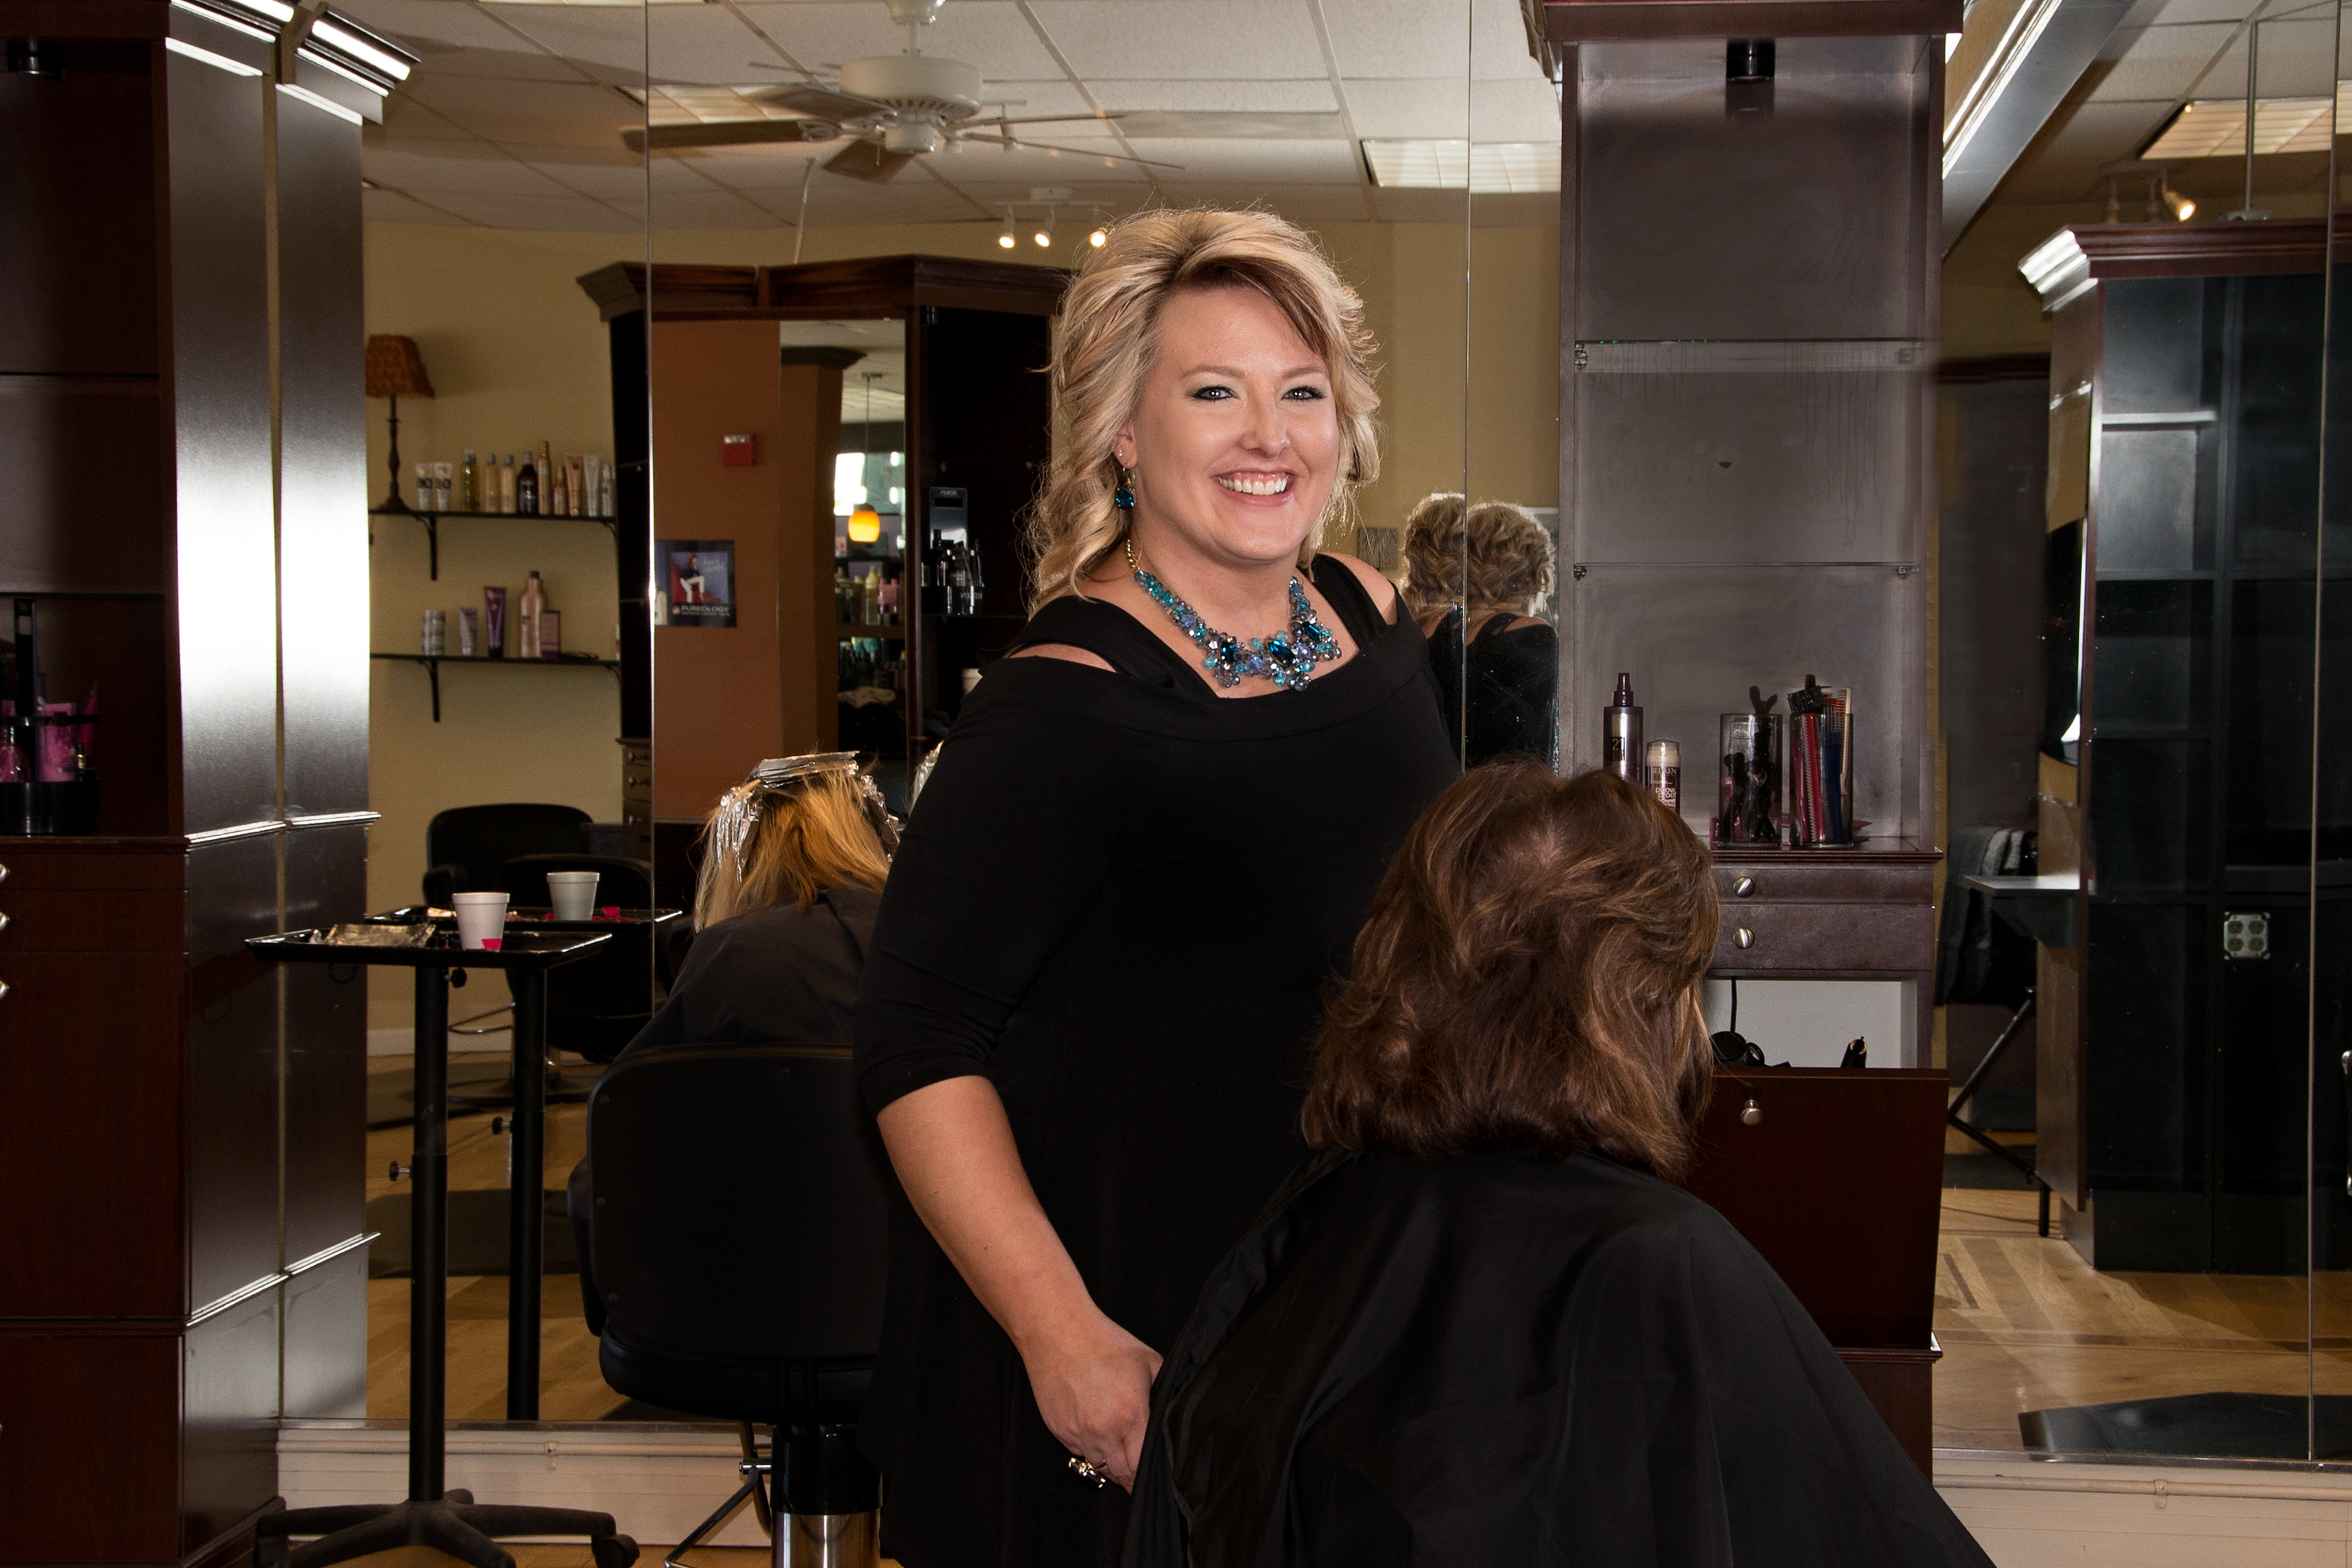 Jane Schindler - Hair Stylist at Salon Nevaeh in Littleton, CO